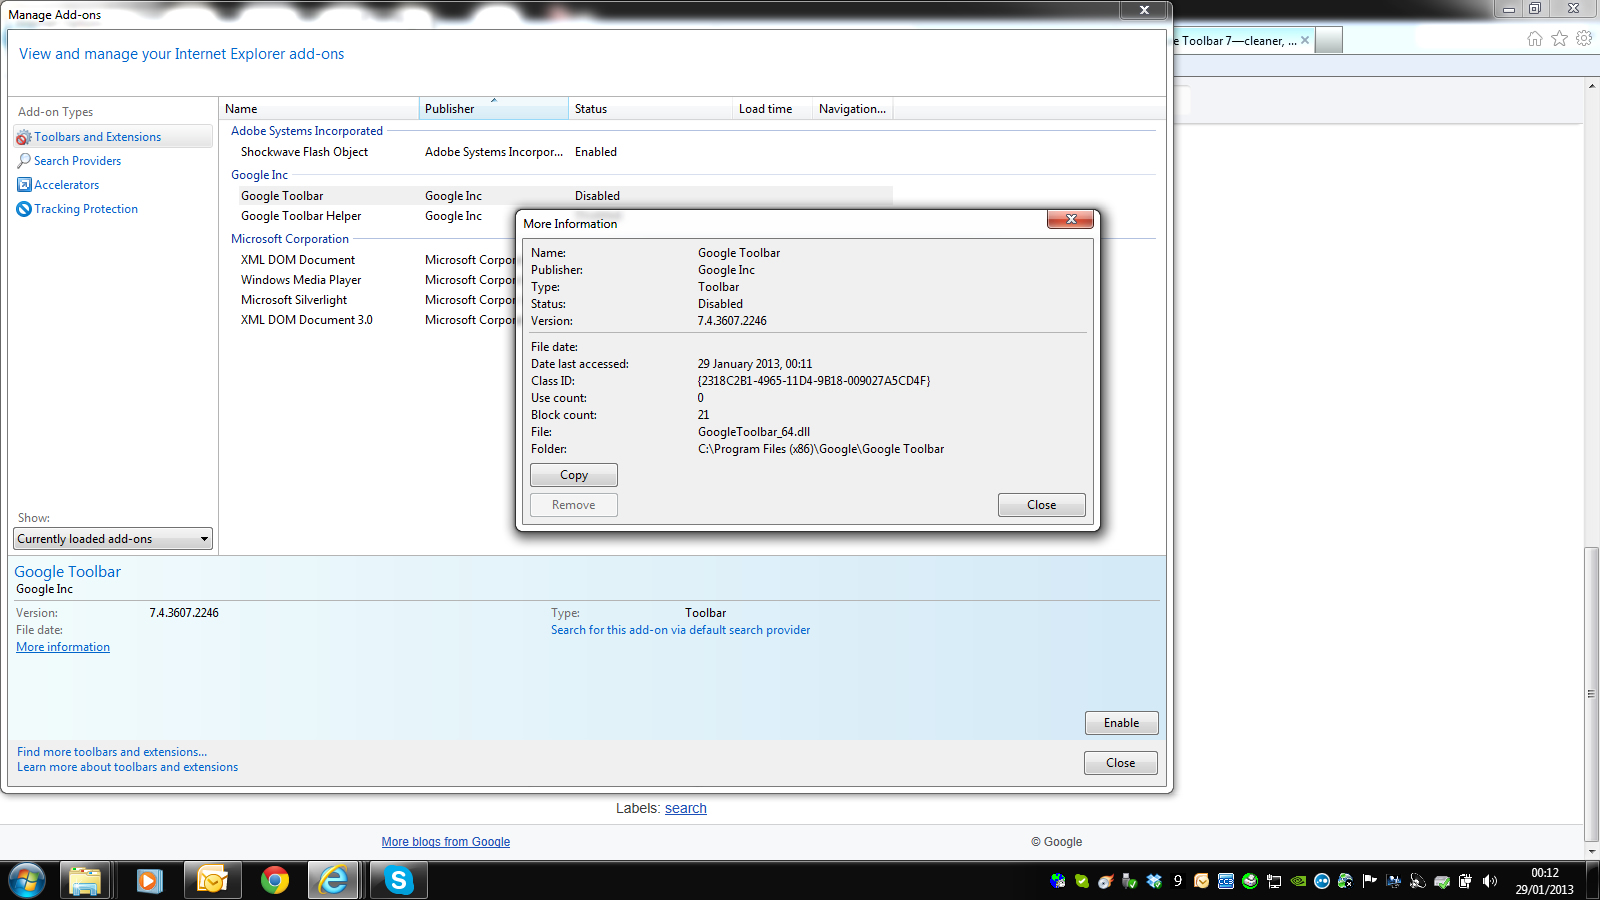 I Am Running Windows 7 With Internet Explorer 9 And